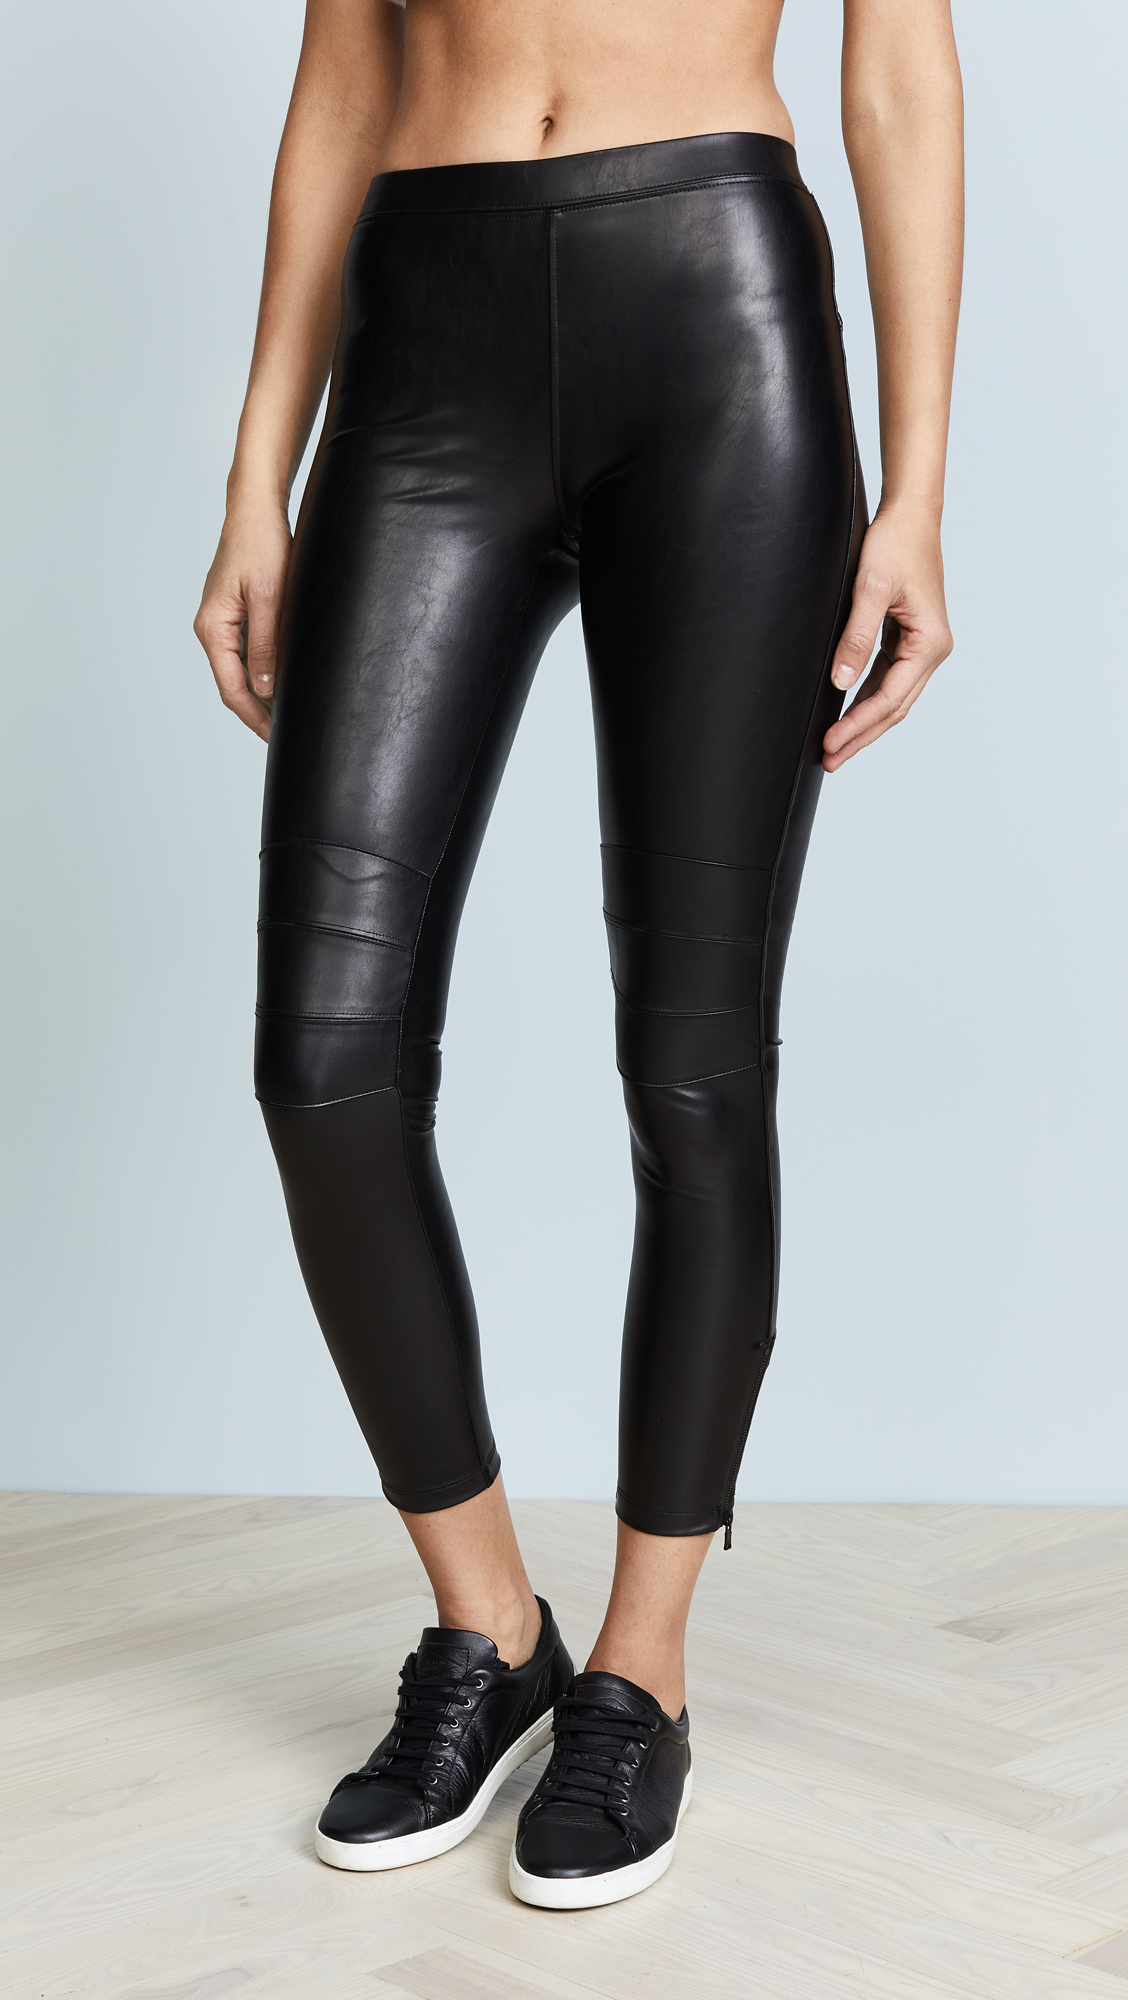 David Lerner Ankle Zip Moto Leggings - Classic Black